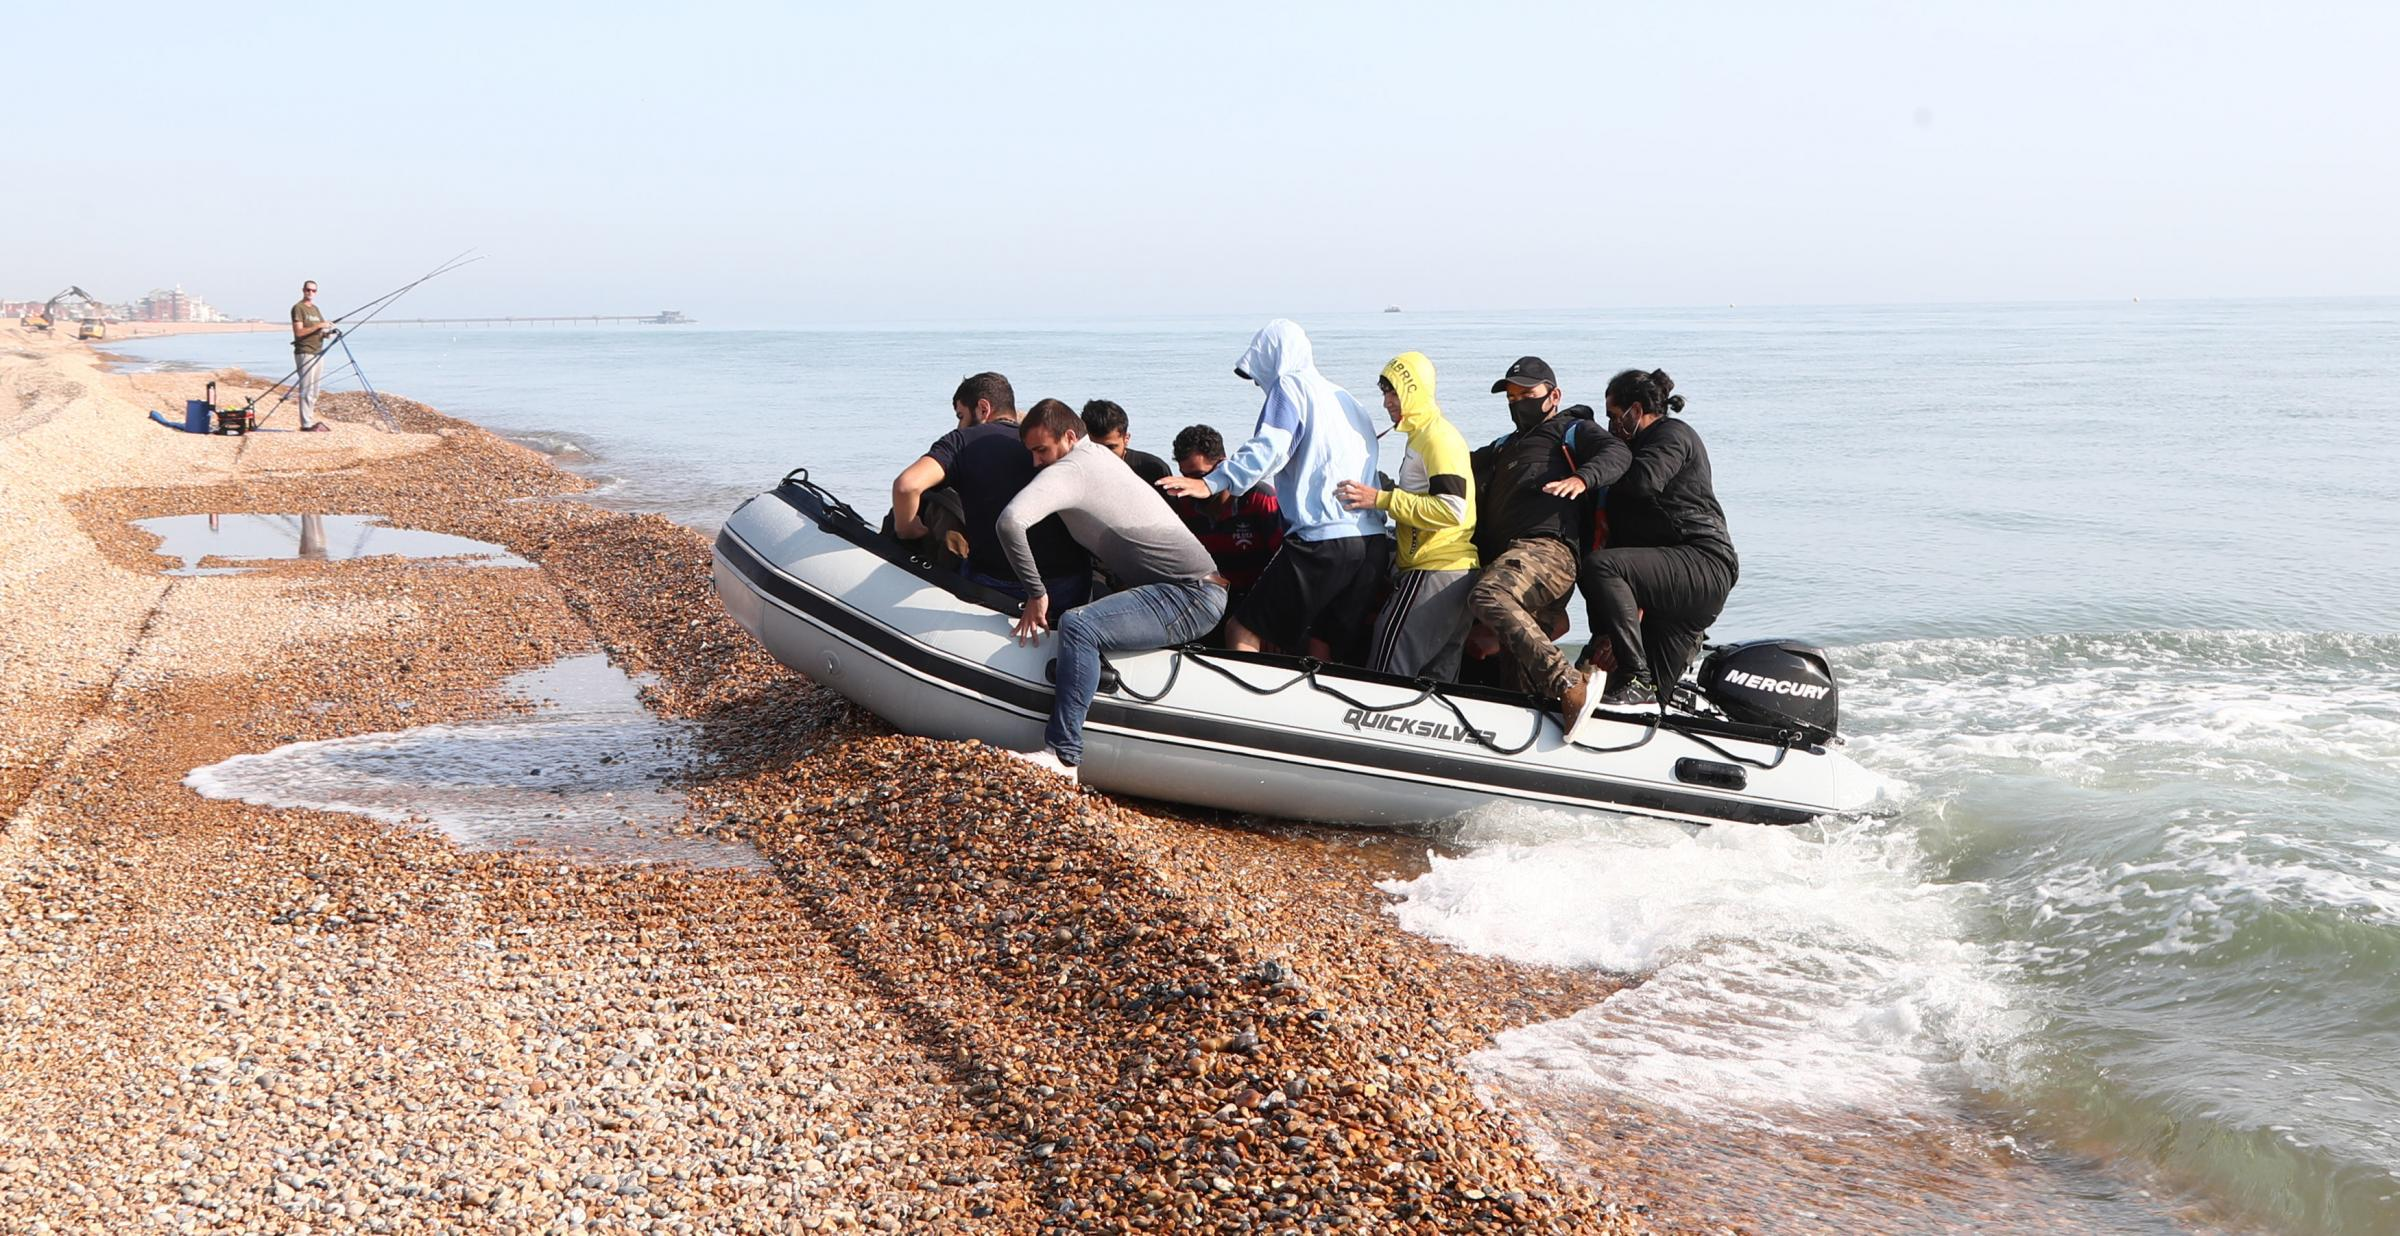 English Channel crossings in 2021 double of last year's figures